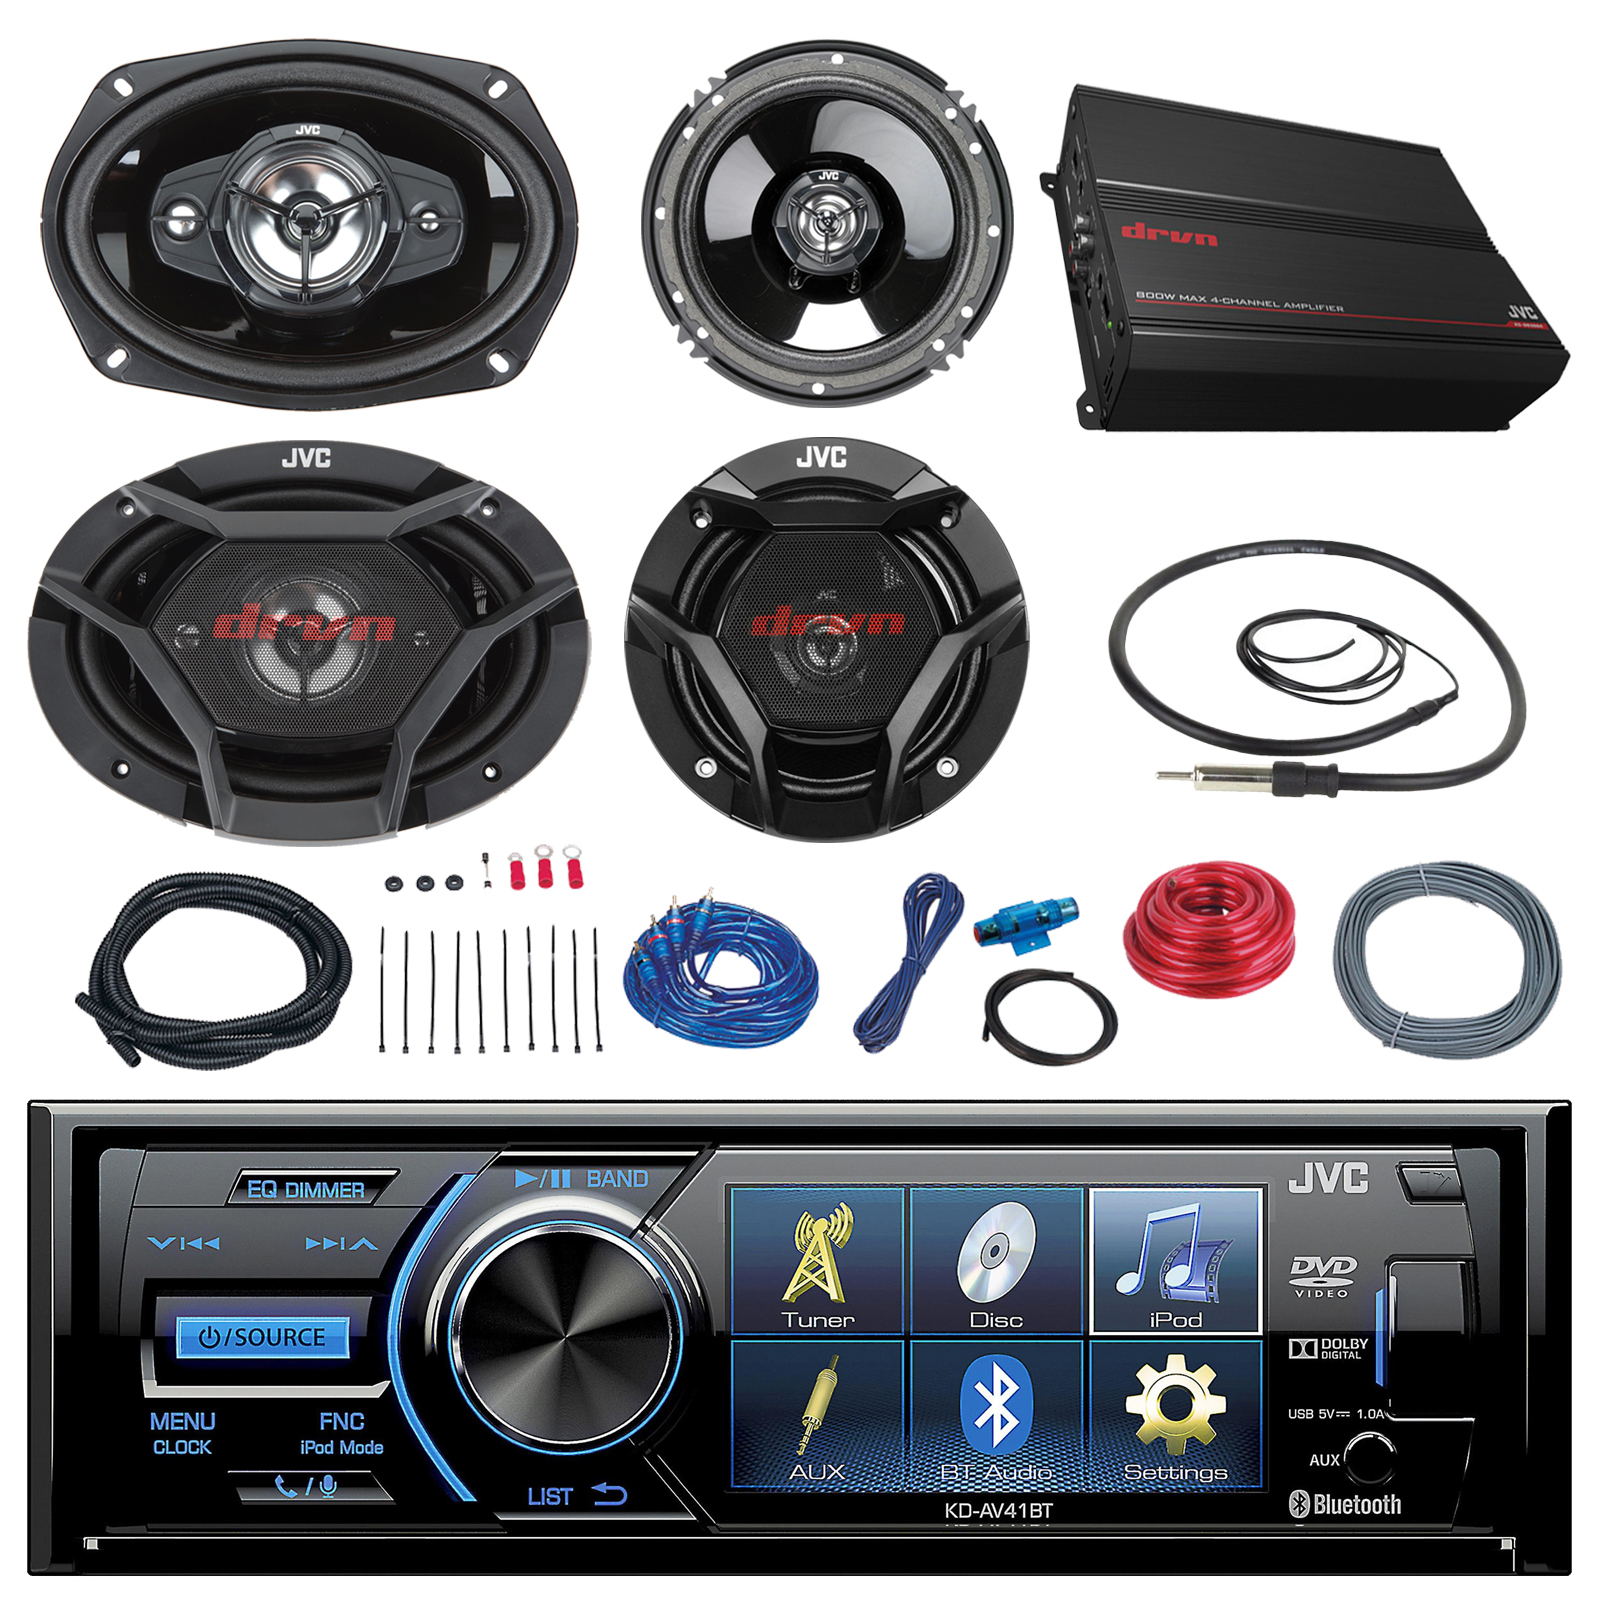 "JVC KD-AV41BT 3"" Car DVD Bluetooth Stereo Receiver Bundle Combo With 2x Dual 6.5"" 2-Way And 2x 6x9"" Inch 4-Way Coaxial Speakers + 1000-Watt 4-Channel Amplifier With Install Kit + Enrock AM/FM Antenna"